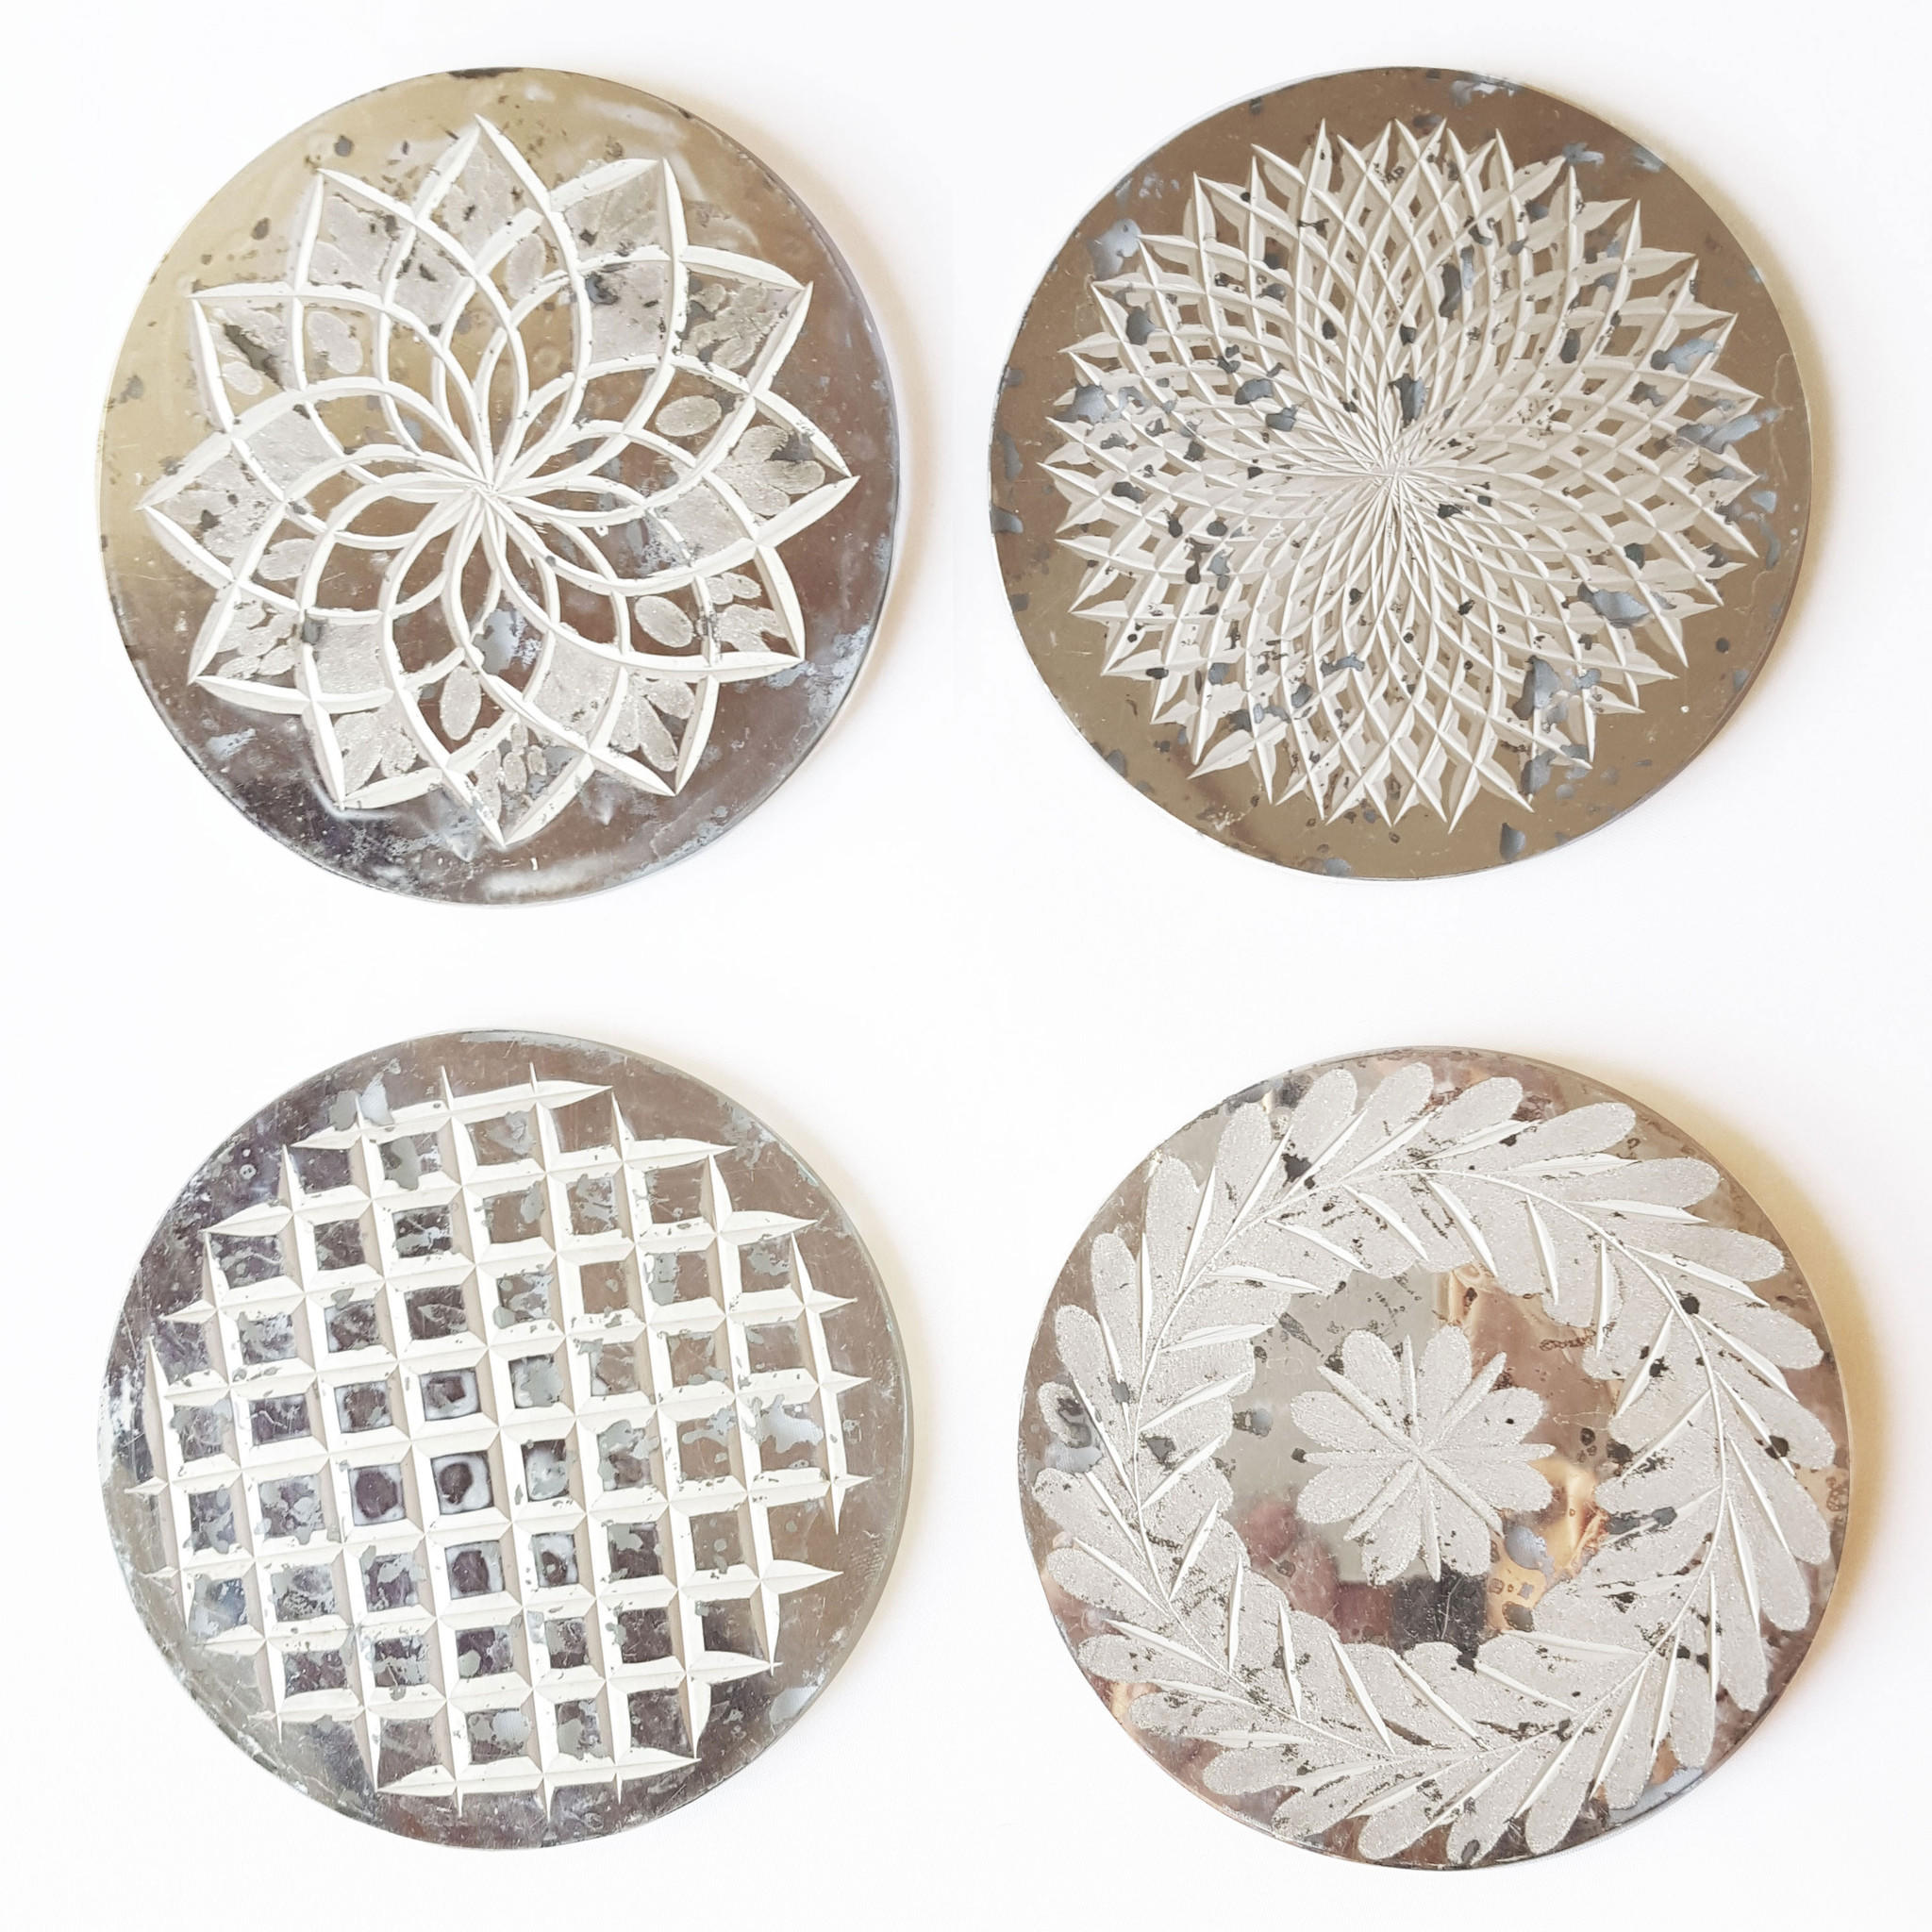 Image of Etched Recycled Glass Coaster Set